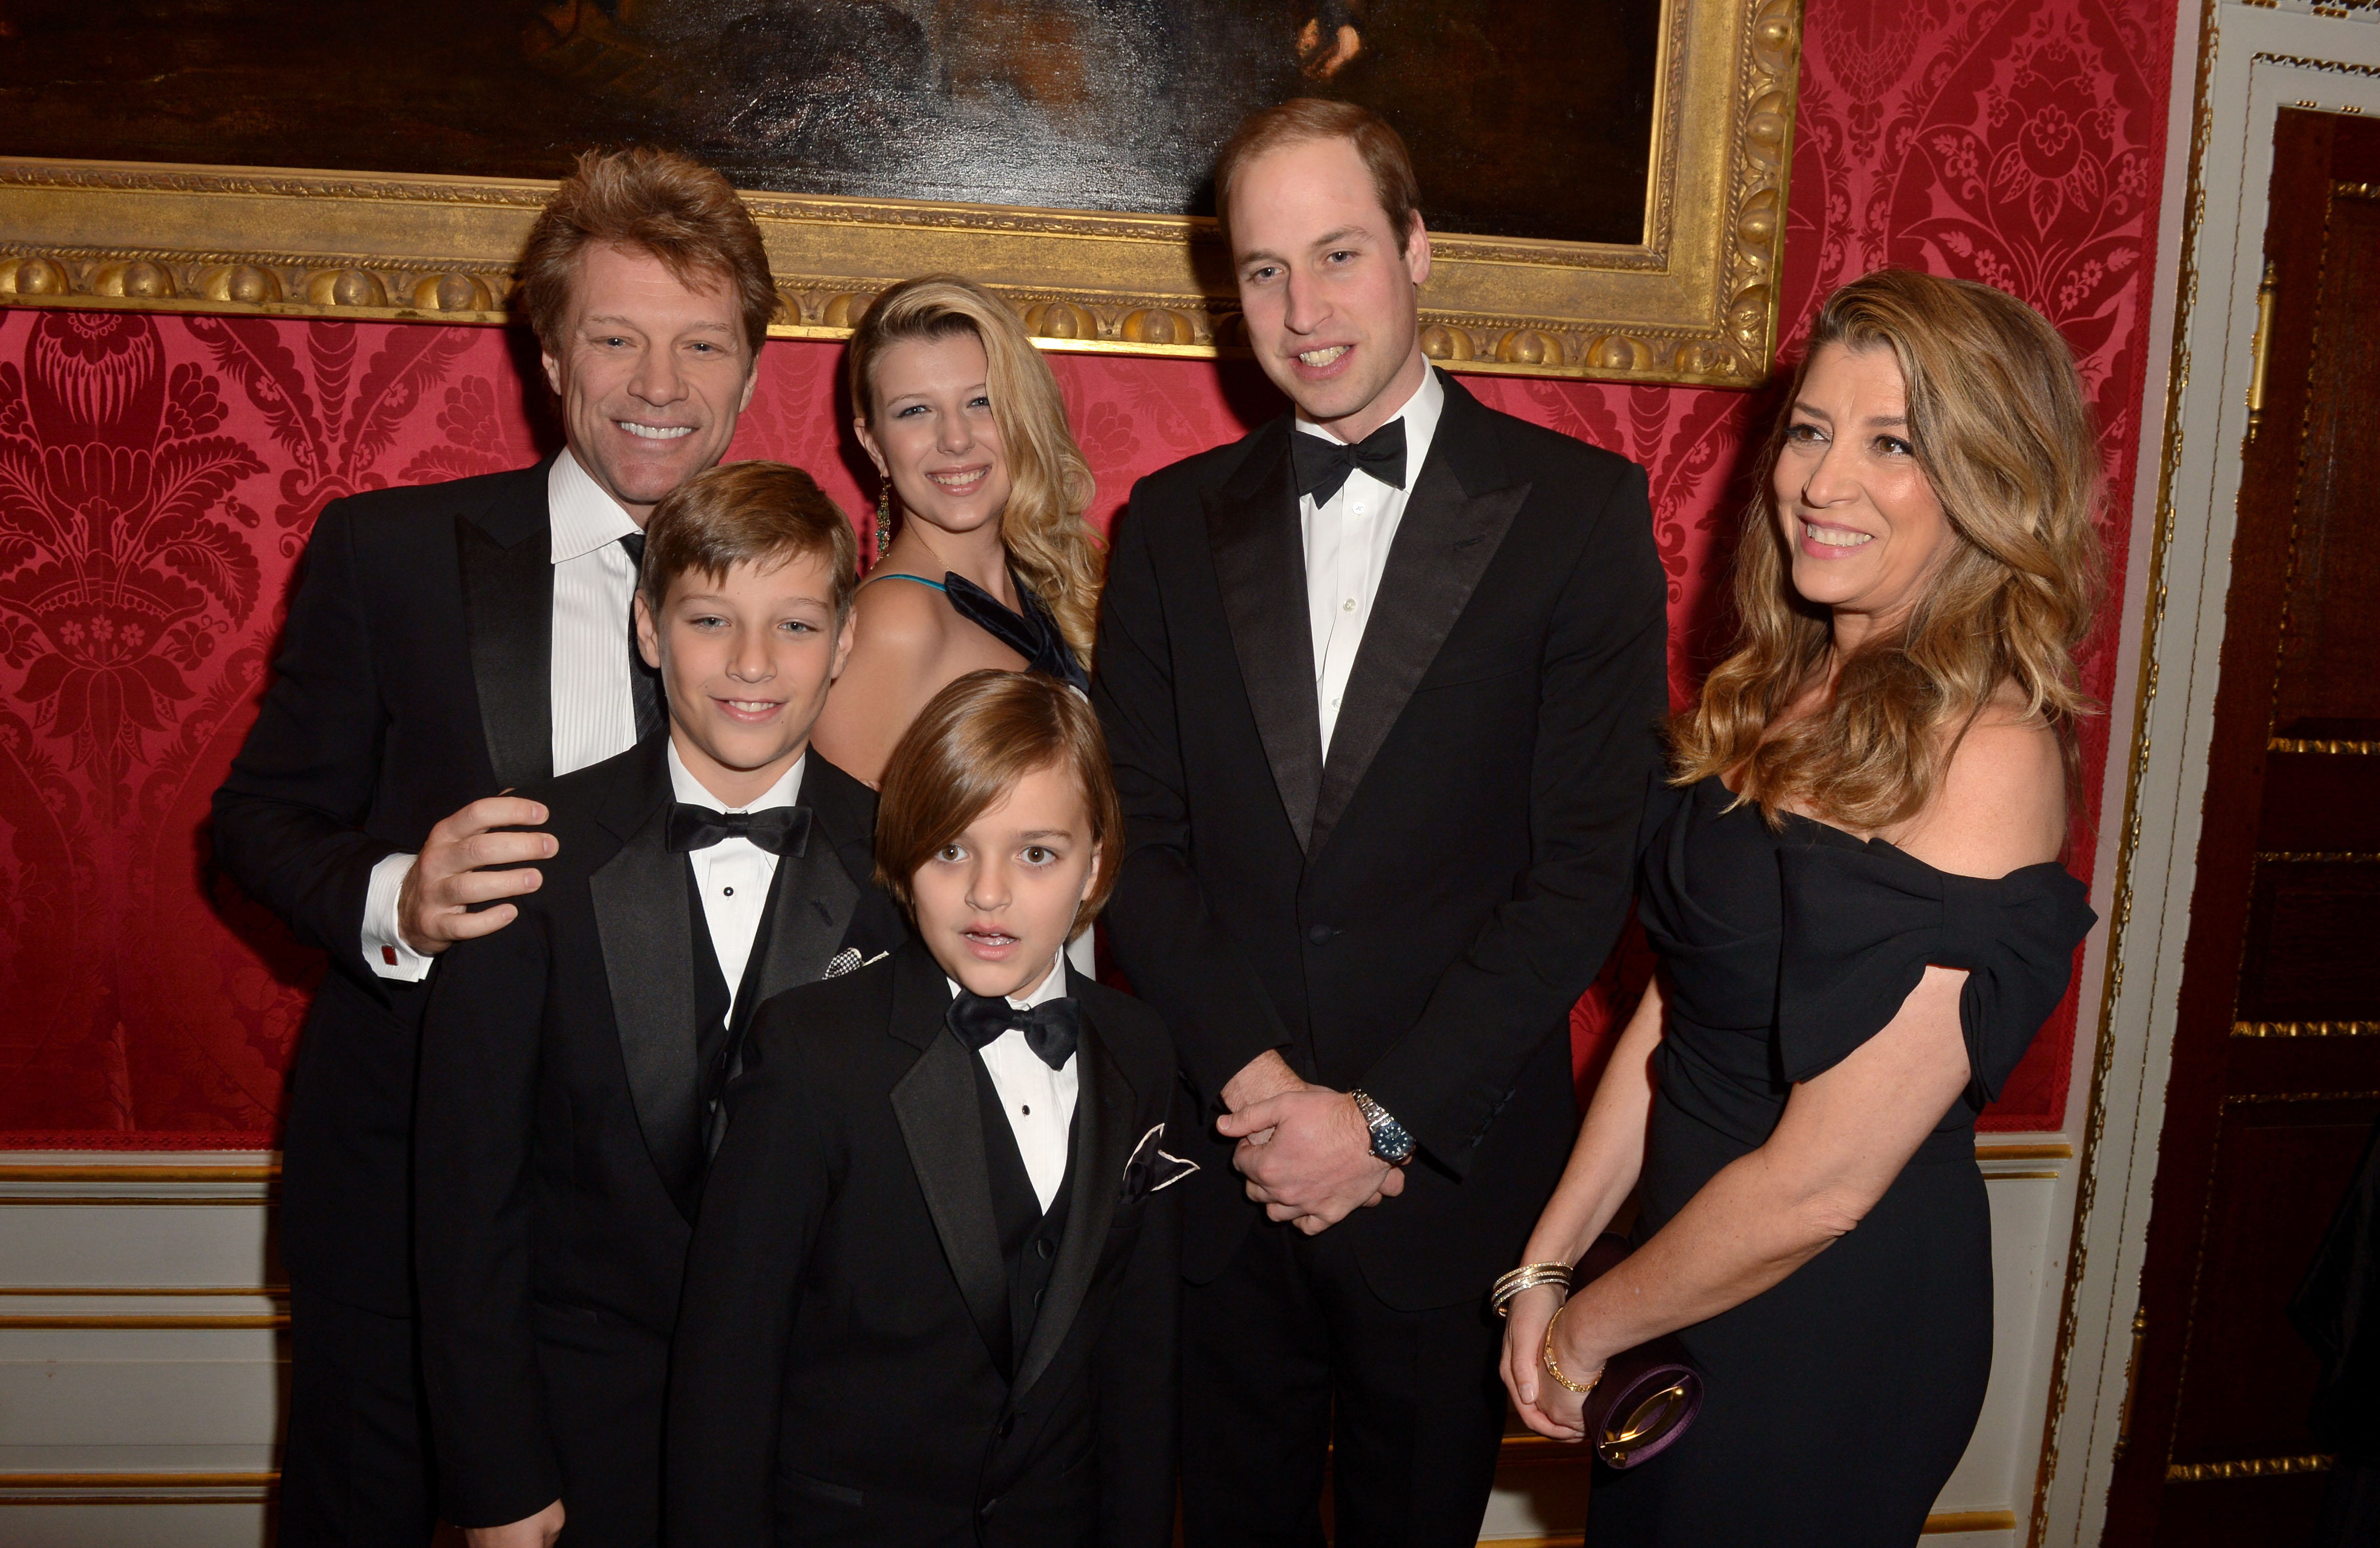 Prince William, Duke of Cambridge meets Jon Bon Jovi and wife Dorothea Hurley and their children Jacob, Stephanie and Romeo at Kensington Palace for the Centrepoint Winter Whites Gala on November 26, 2013, in London, England. (Getty Images)